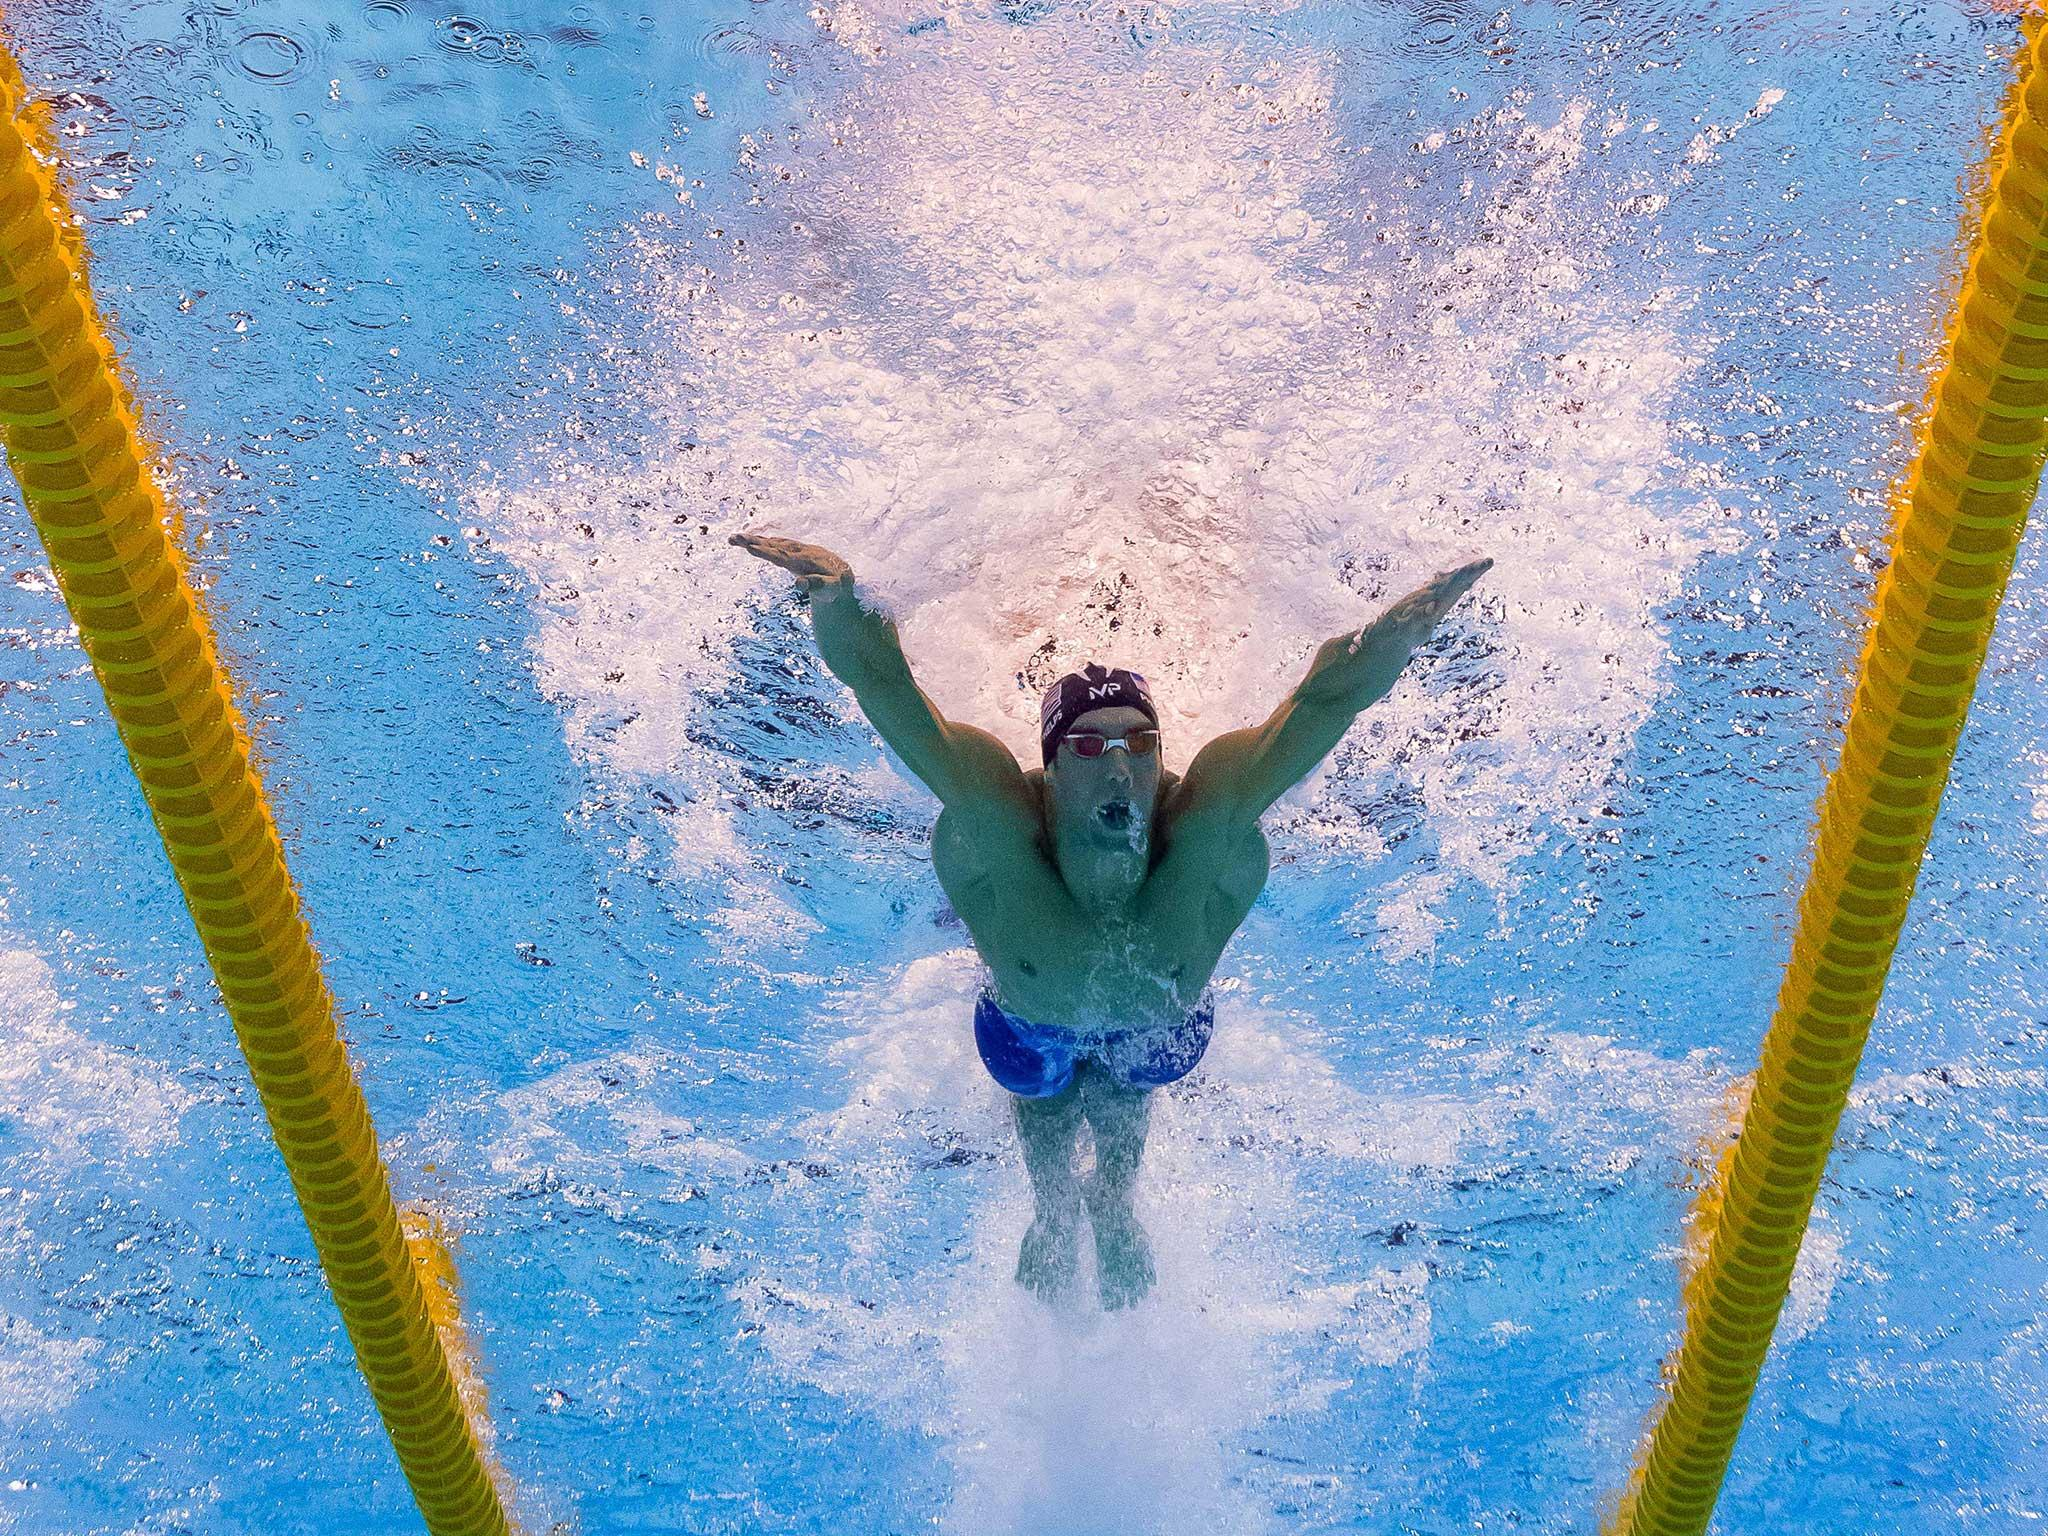 Phelps takes home his fifth gold medal from Rio